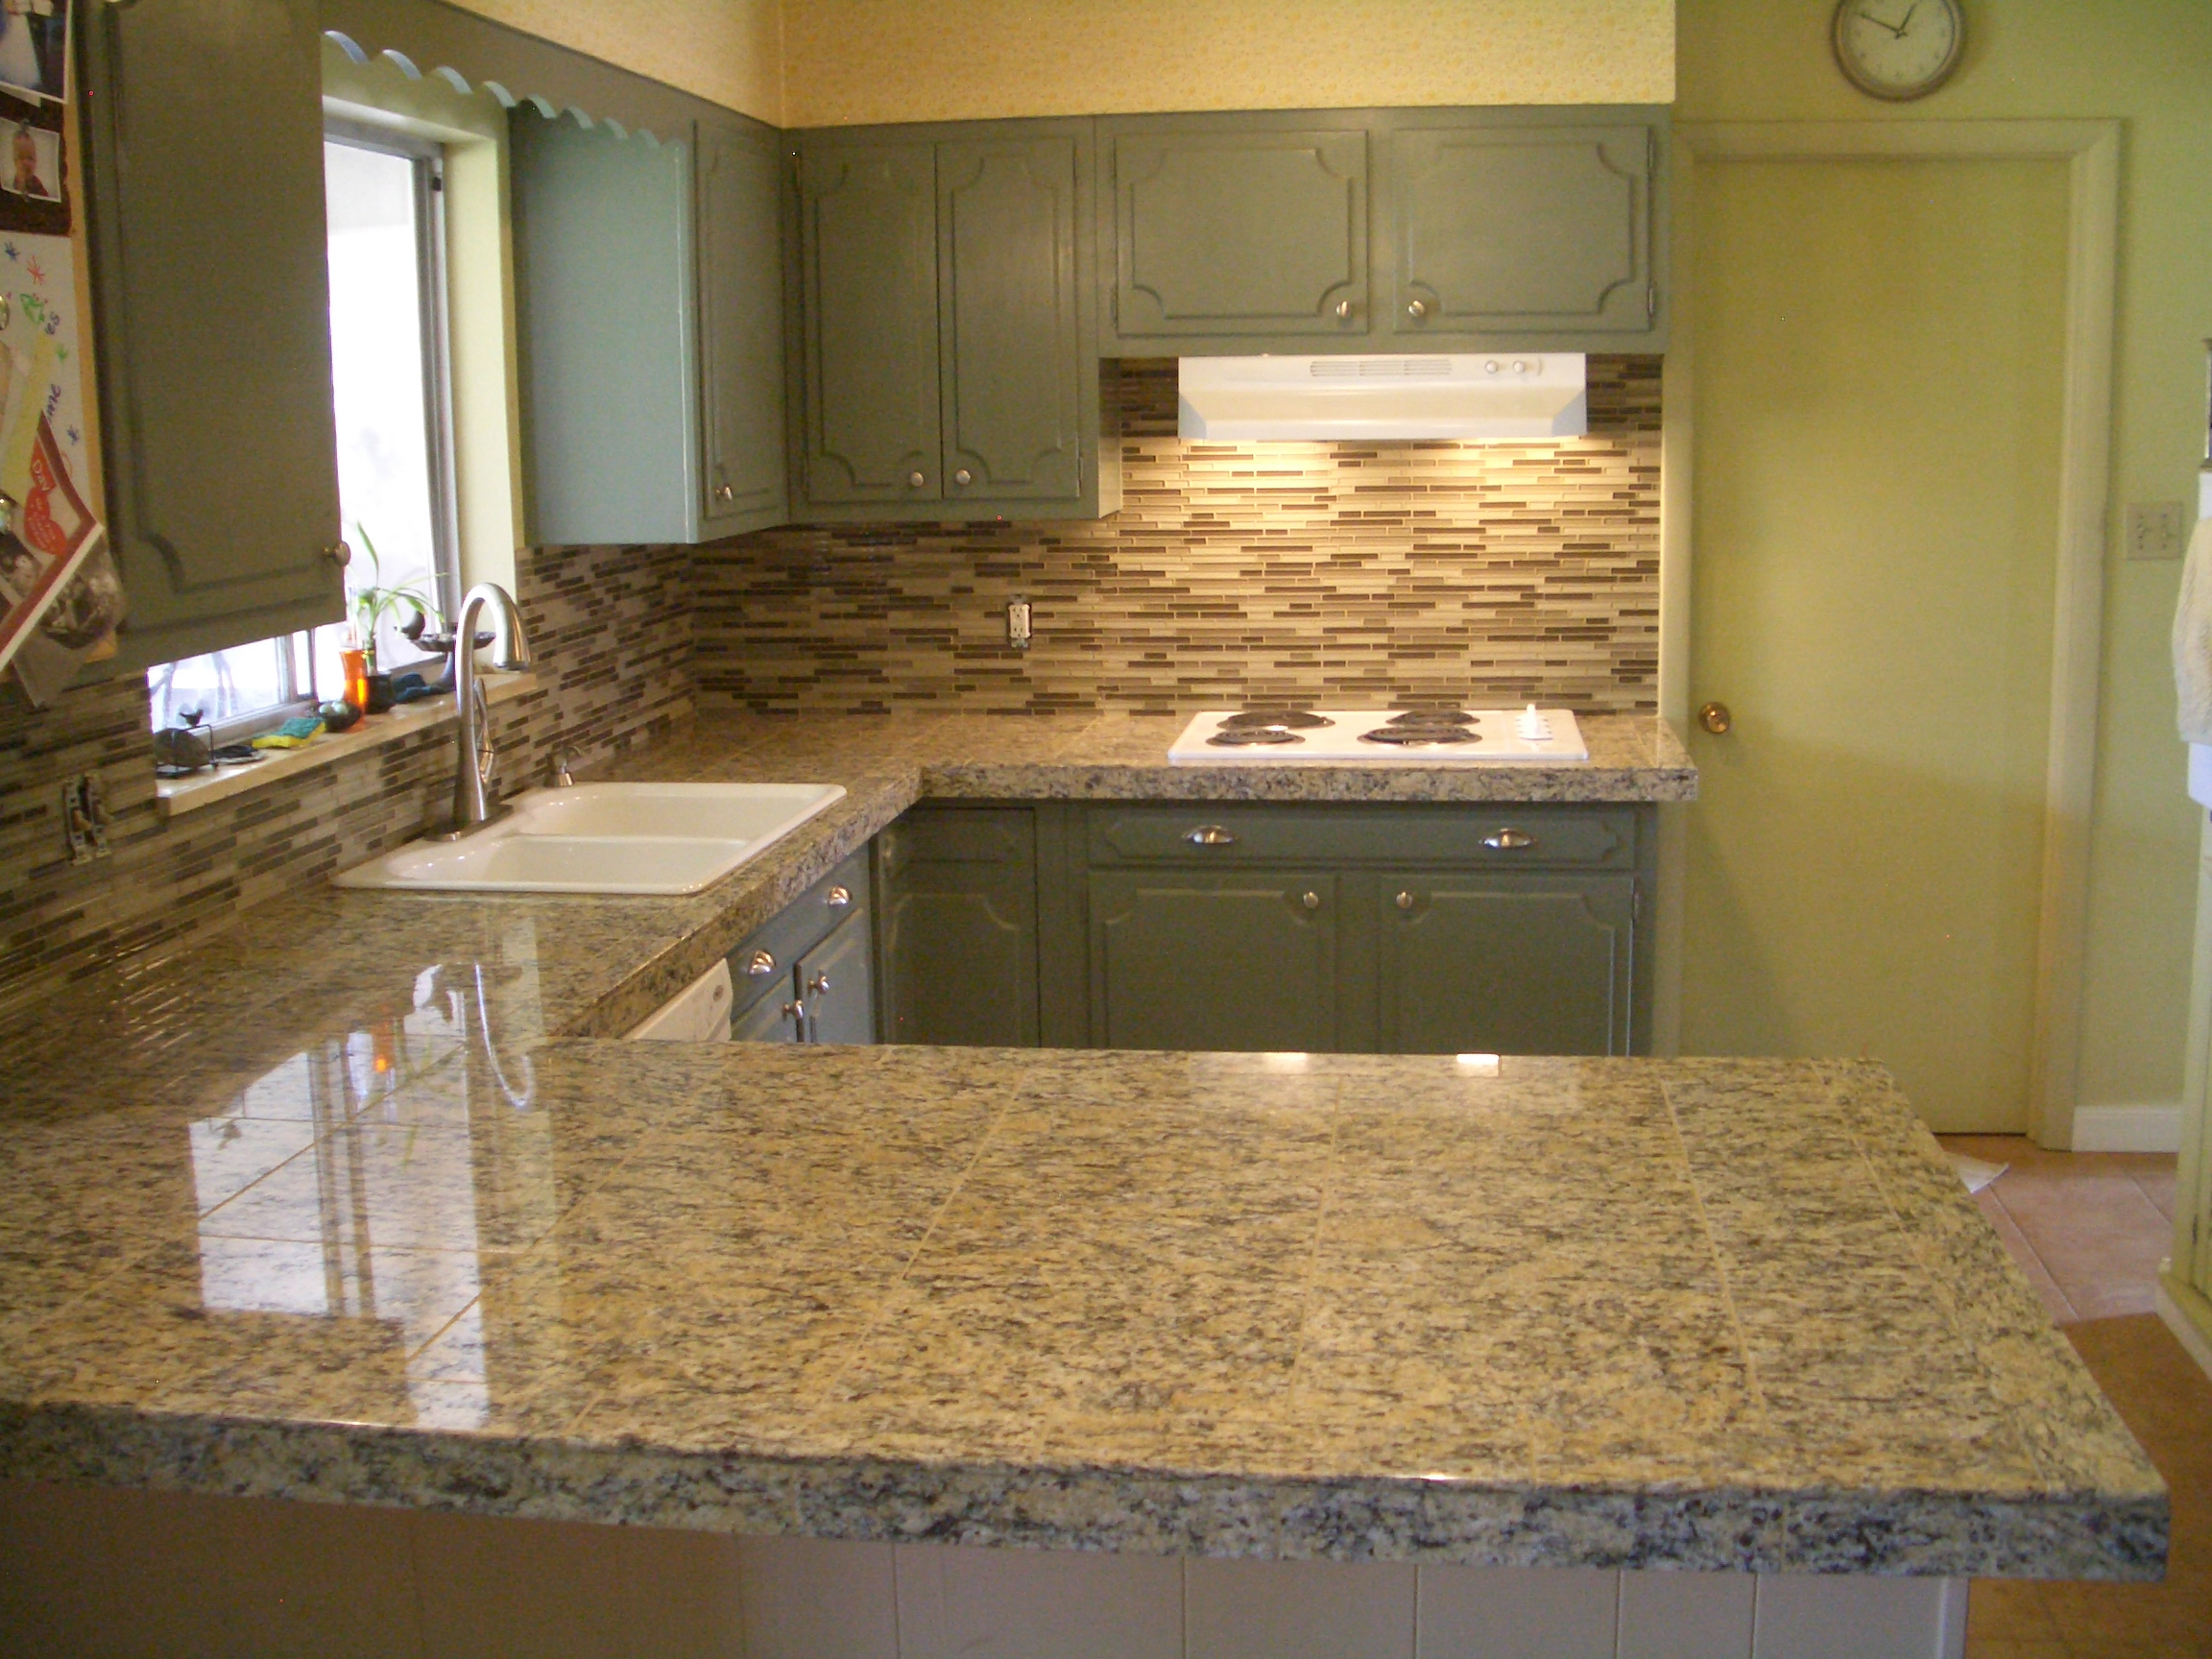 Images Of Kitchen Backsplashes Glass Tile Backsplash Home Design And Decor Reviews